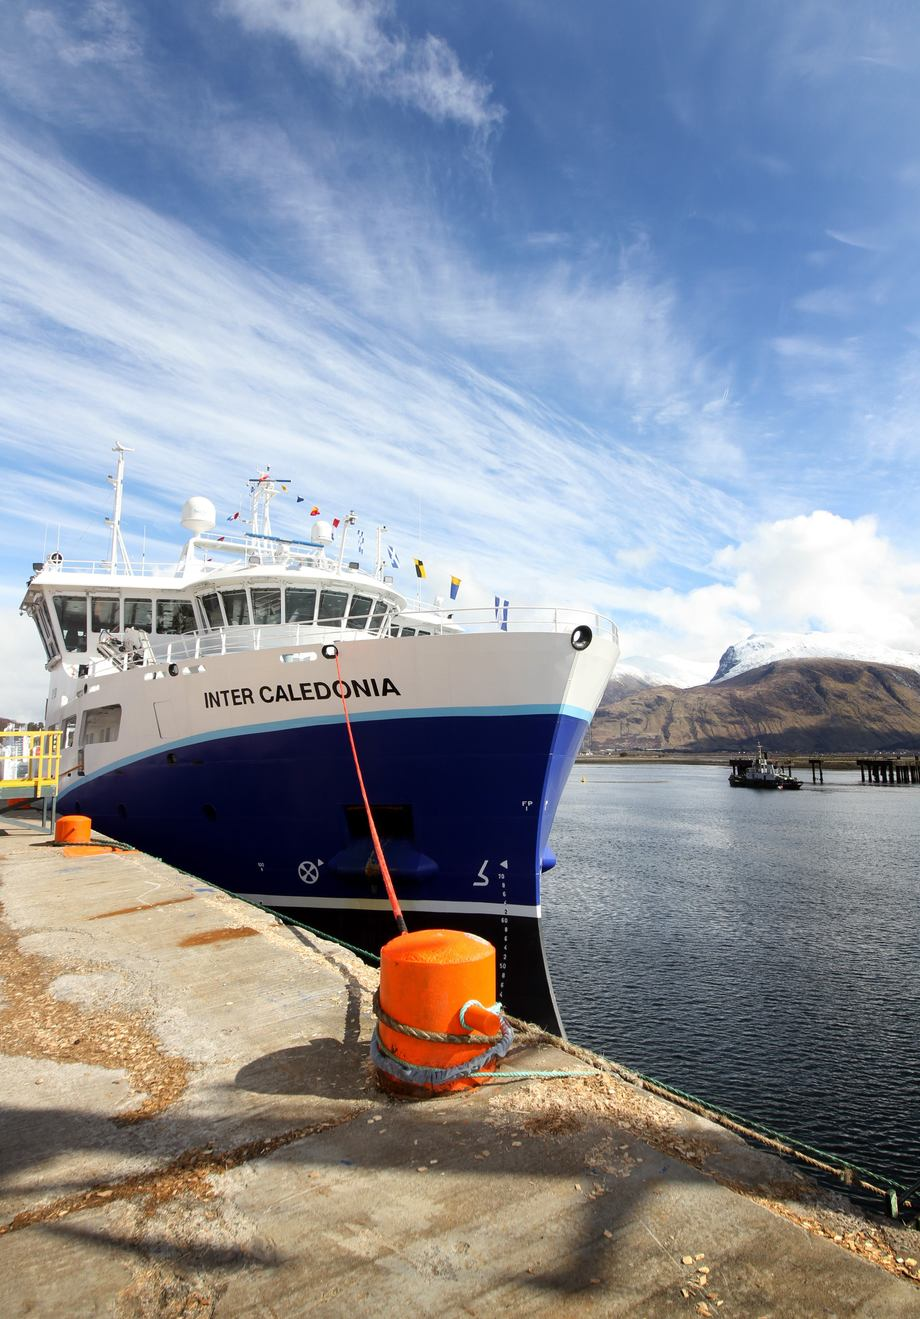 The Inter Caledonia, which was officially launched by MH Scotland in April, is one of a number of vessels designed to deliver non-chemical lice treatments. Image by Arthur Campbell.